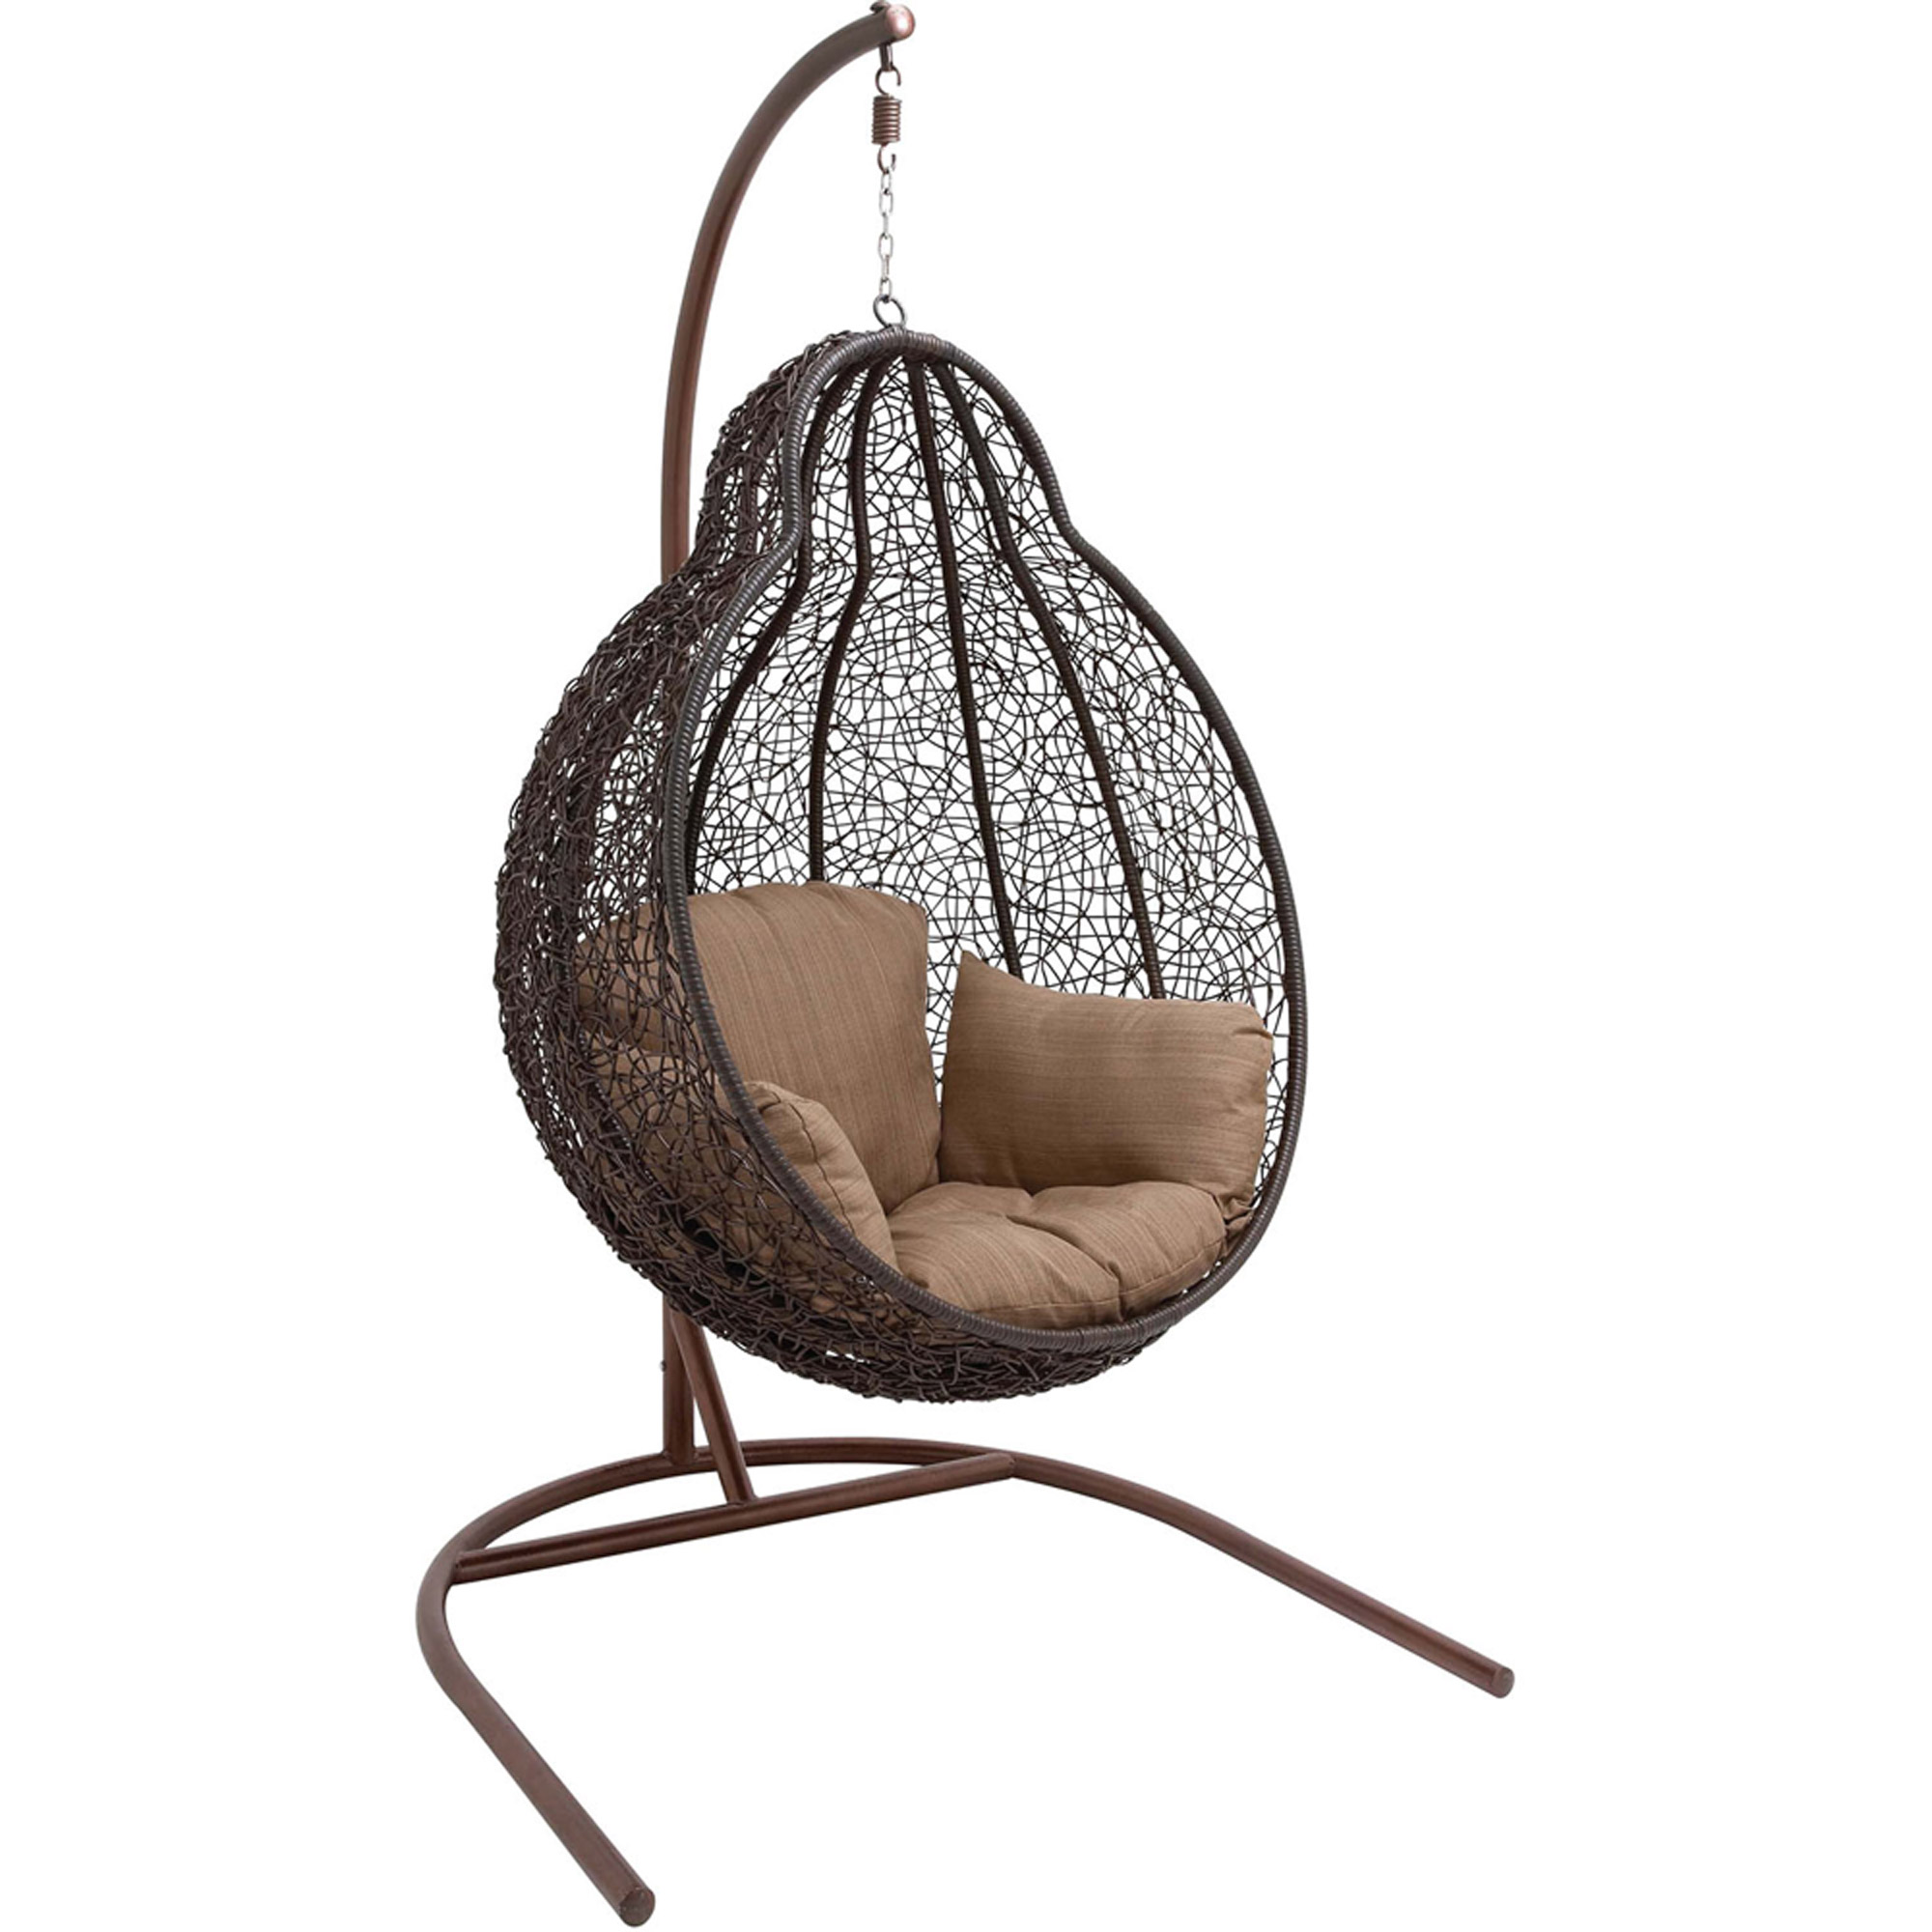 Wicker egg chair - Hanover Egg Swing04 Outdoor Wicker Rattan Hanging Egg Chair Swing Brown Tan Walmart Com